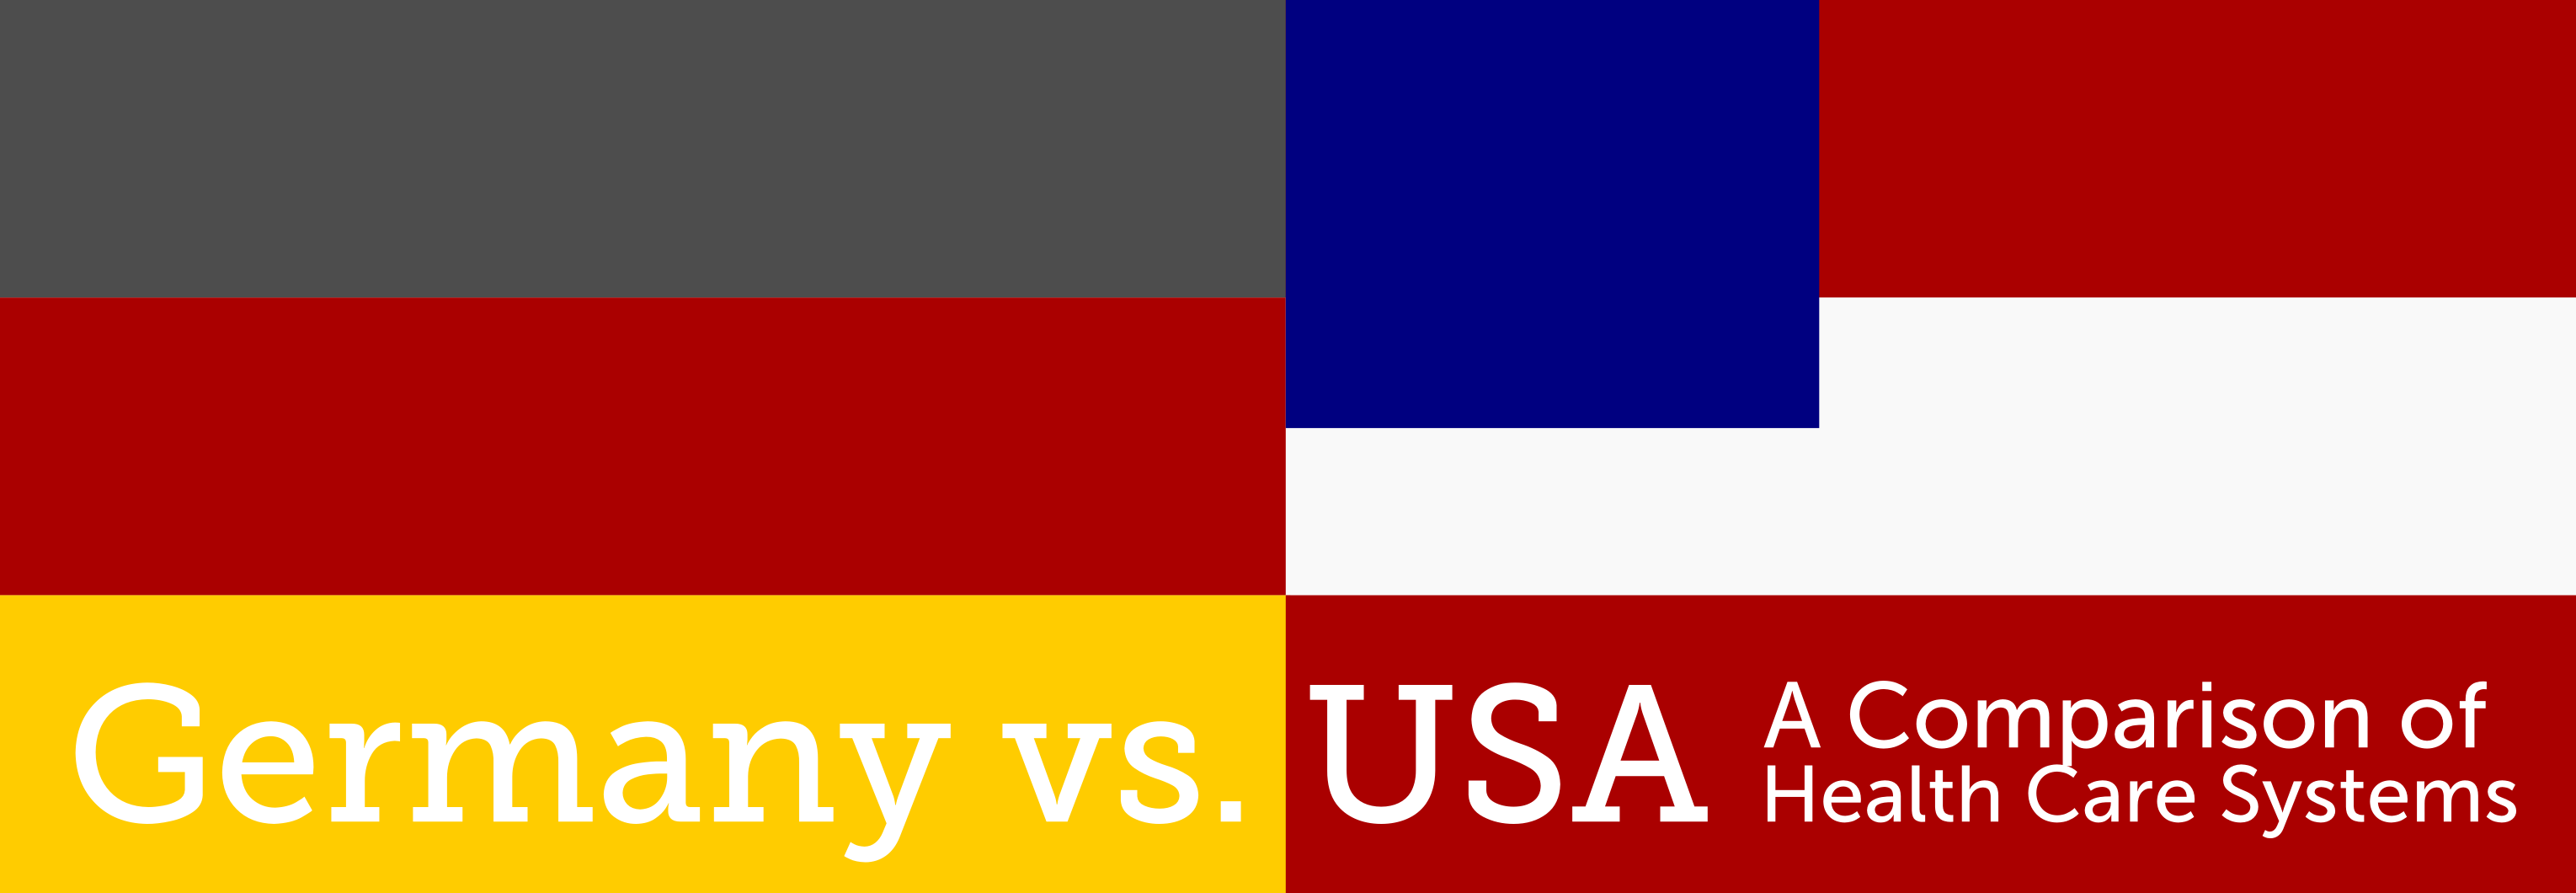 germany vs usa health care systems comparision